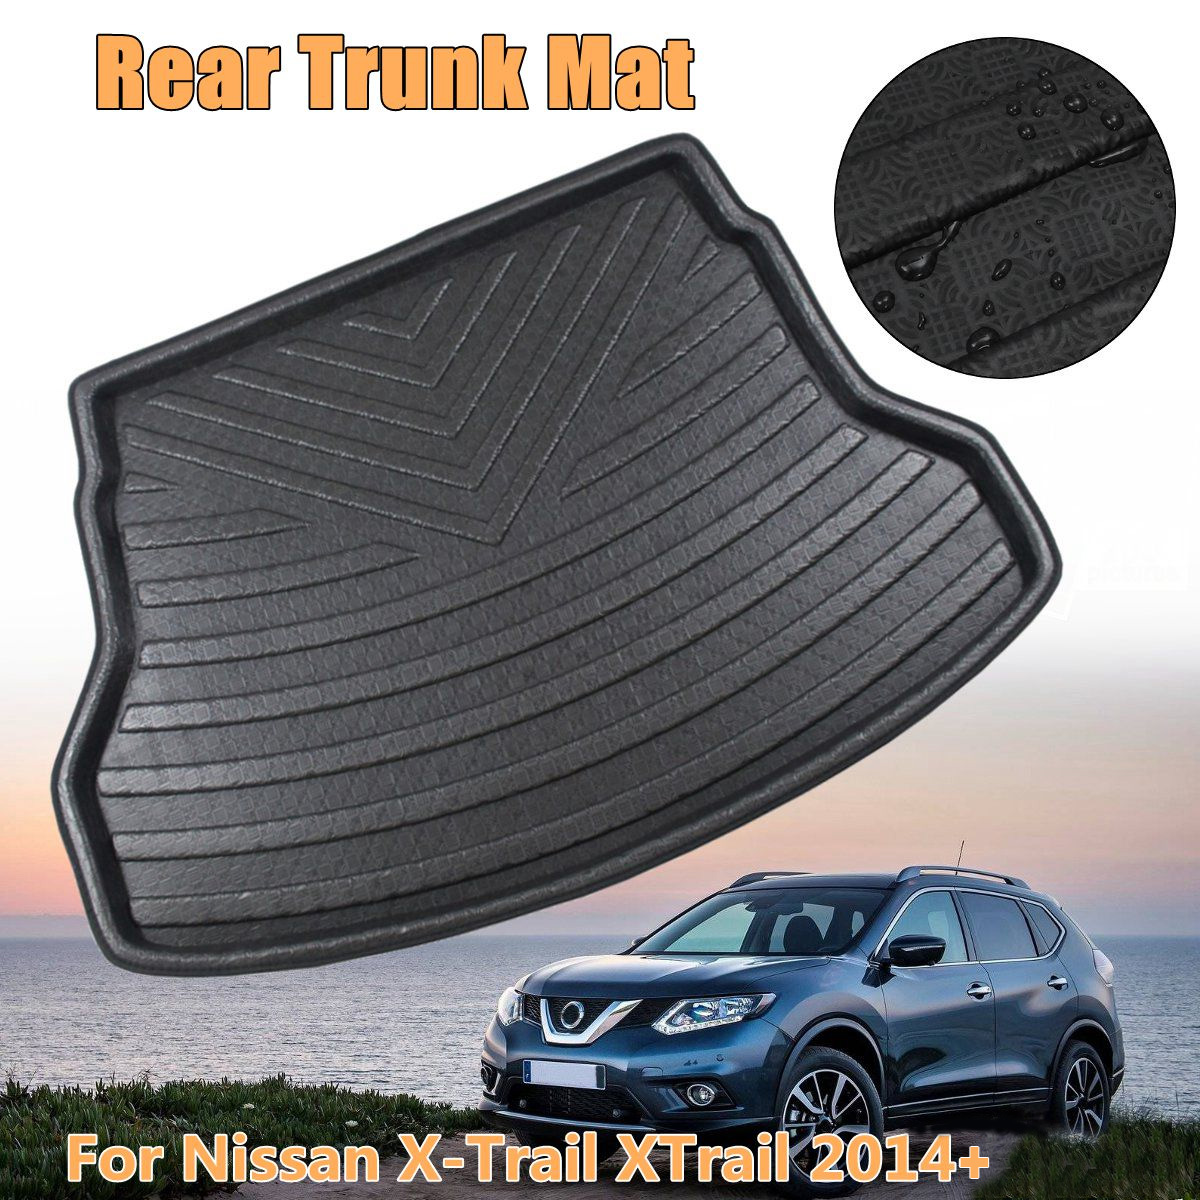 Car Boot Cargo Liner For Nissan X-Trail XTrail 2014 2015 2016 2017 2018 2019+ Rear Trunk Floor Mat Tray Carpet Mud Protector 1Pc